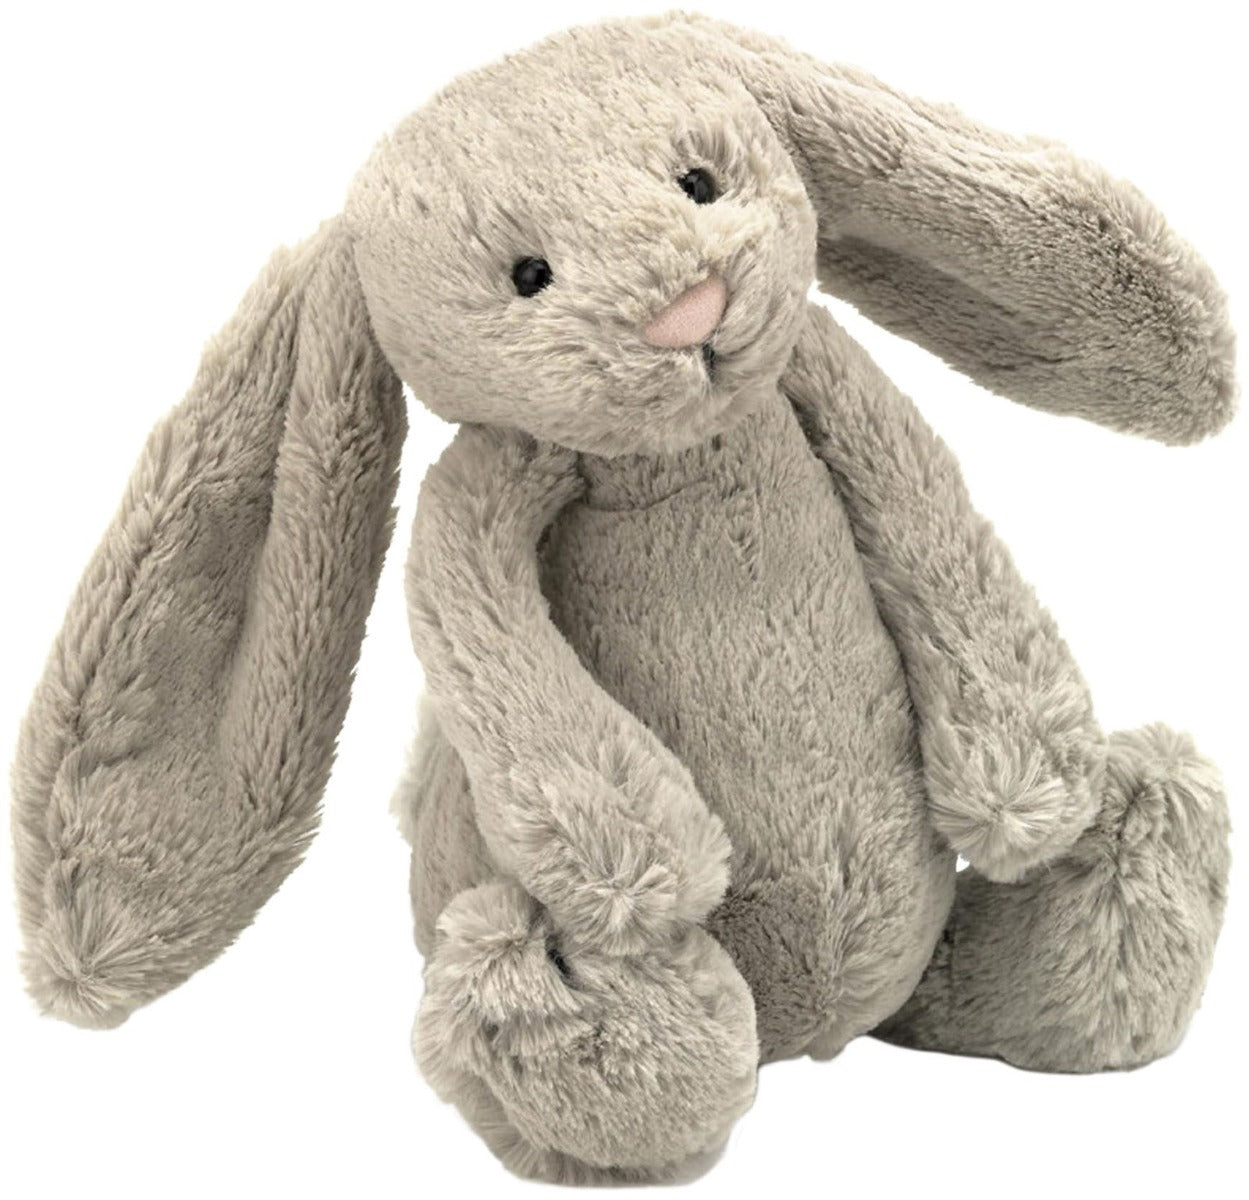 Jellycat Small Bashful Bunny Beige at Little Sprout